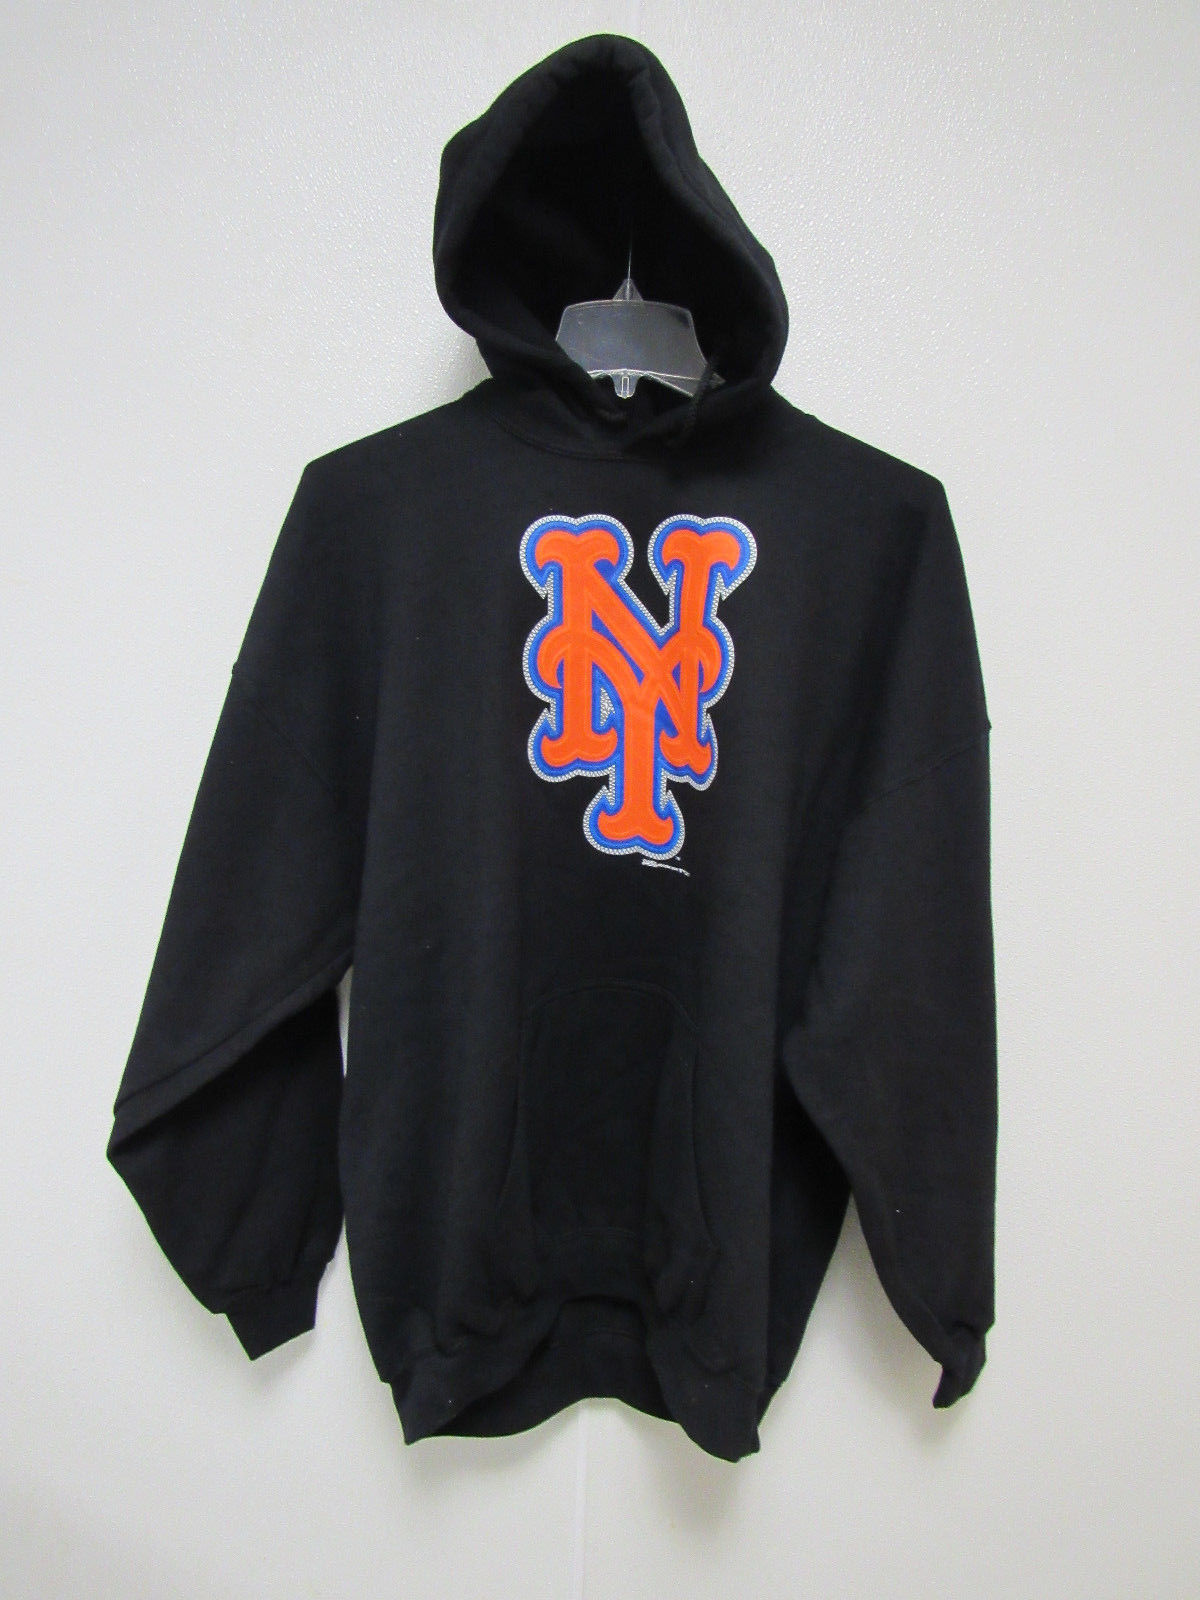 Primary image for NWT MLB PUFF SILK SCREEN HOODED PULLOVER SWEATSHIRT BLACK - NEW YORK METS - 2XL